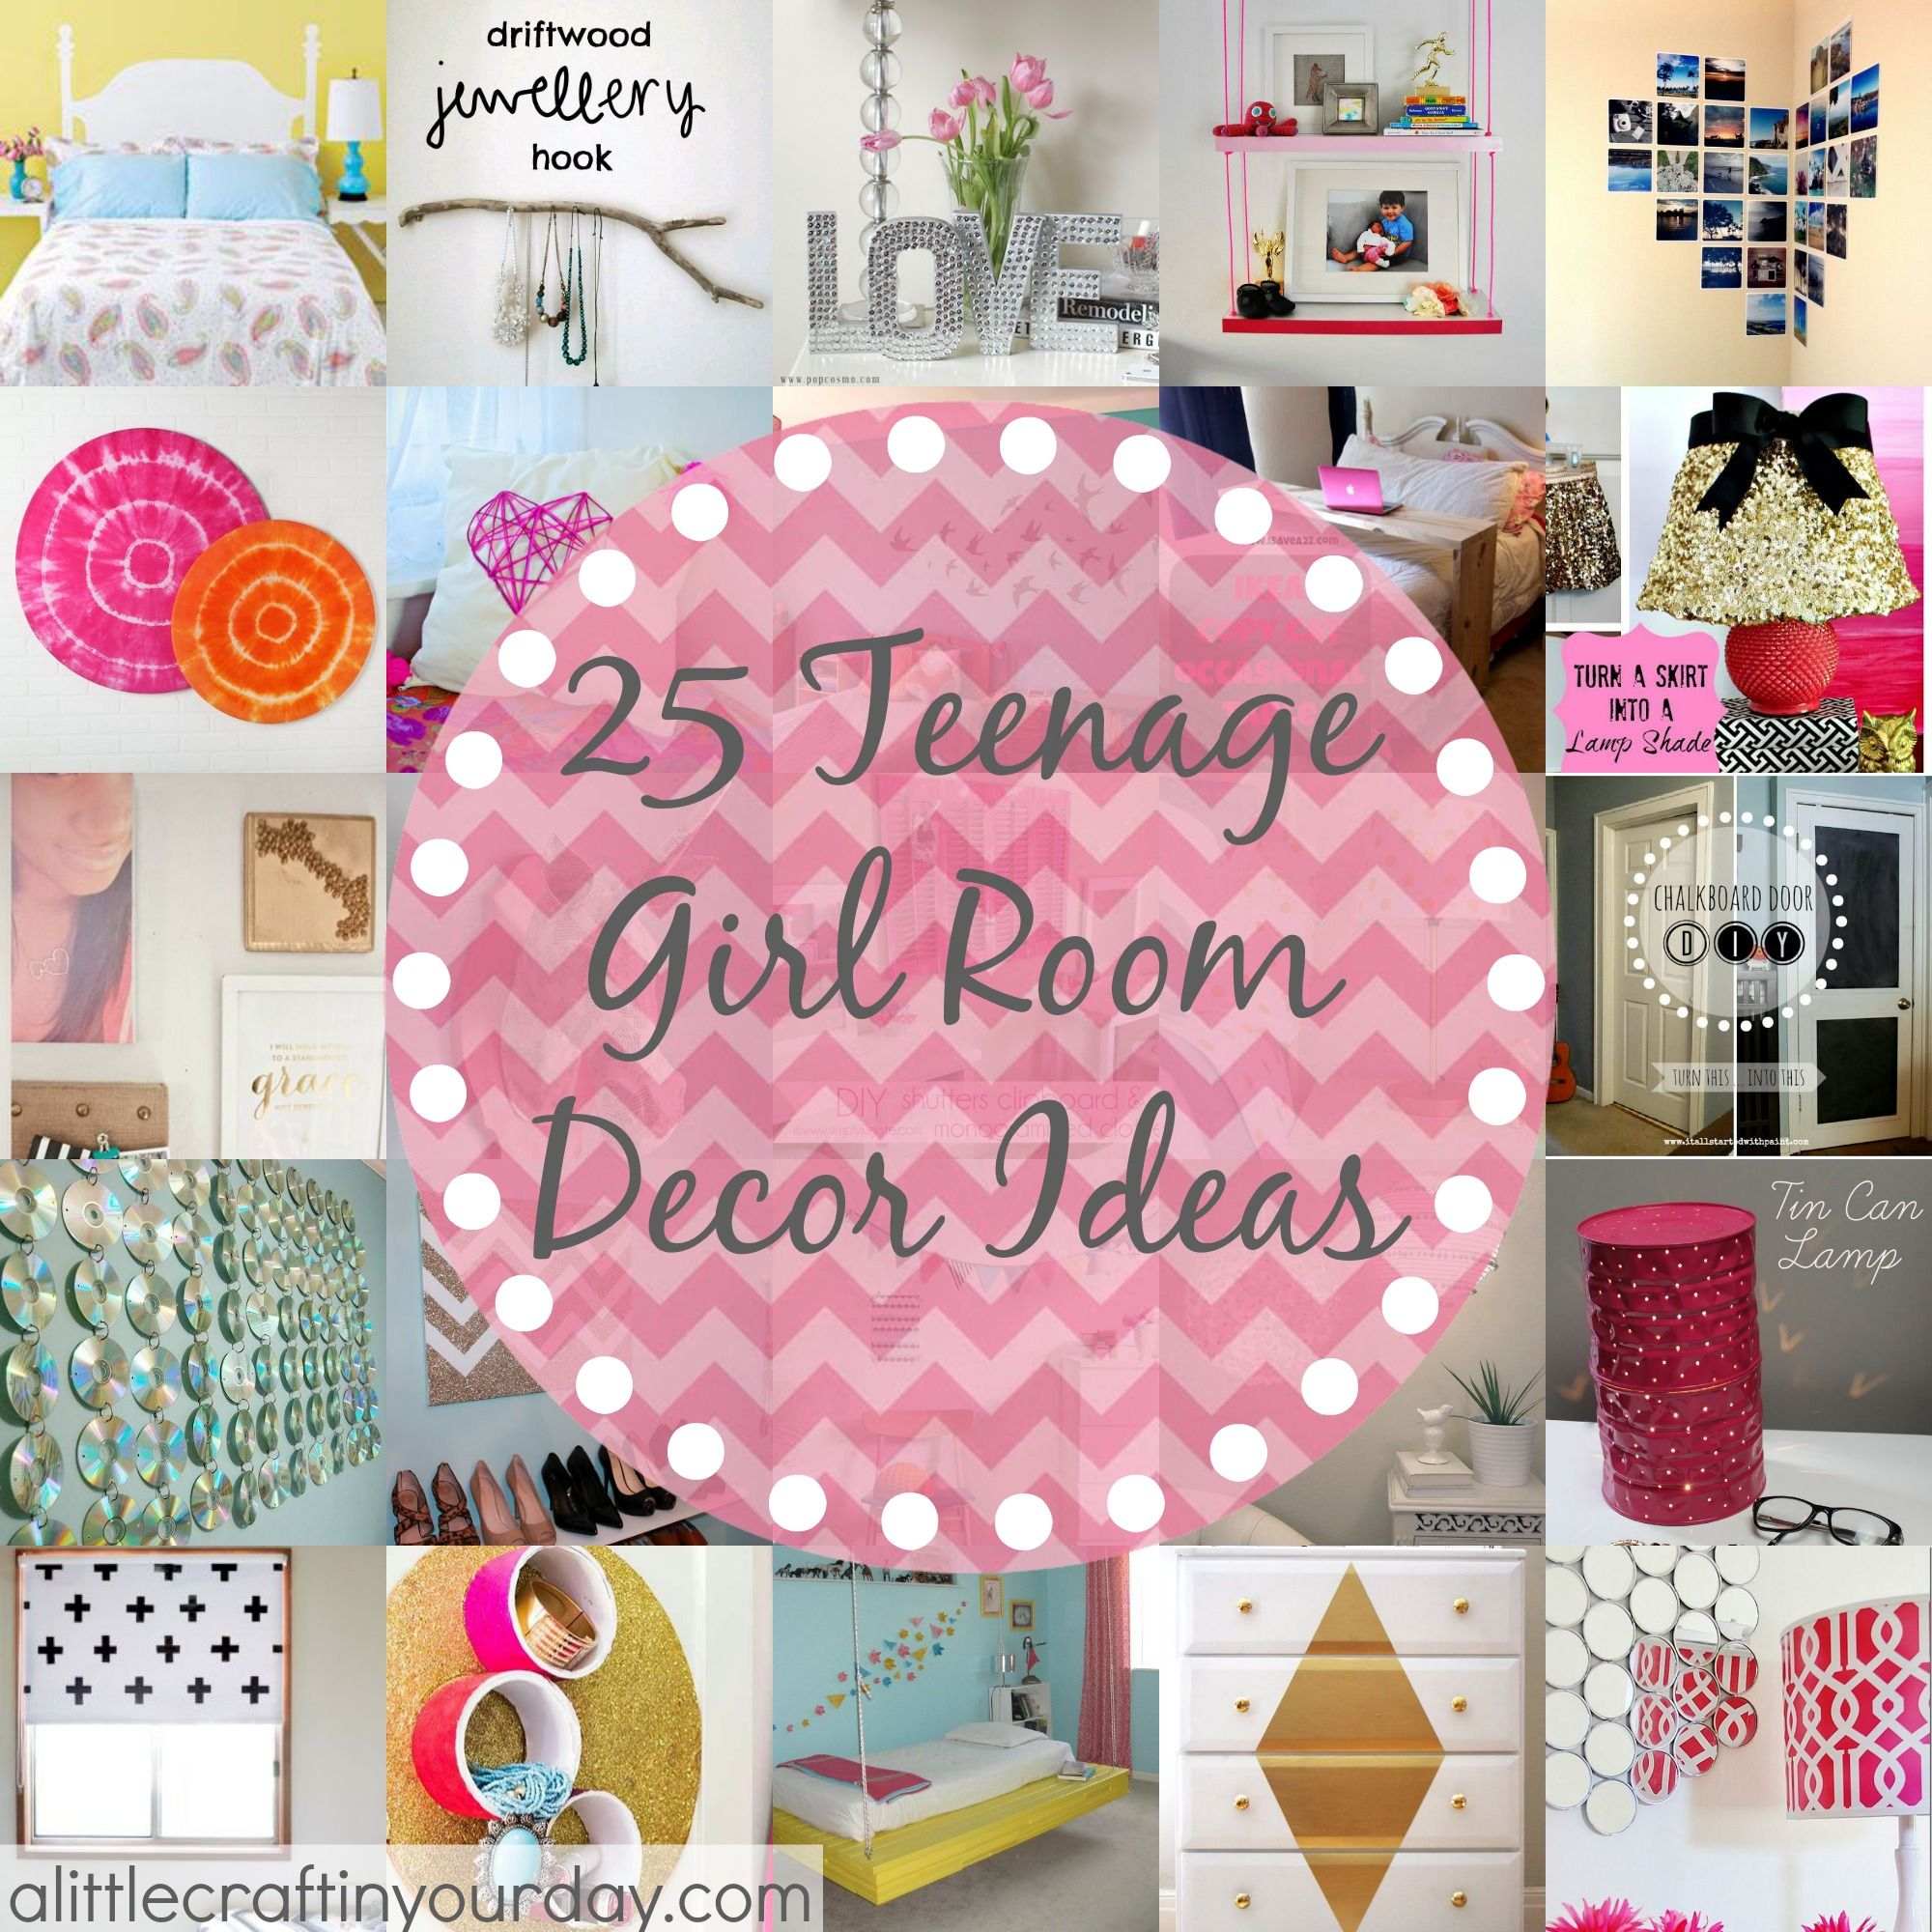 Bedroom decor ideas for girls - 25 More Teenage Girl Room Decor Ideas